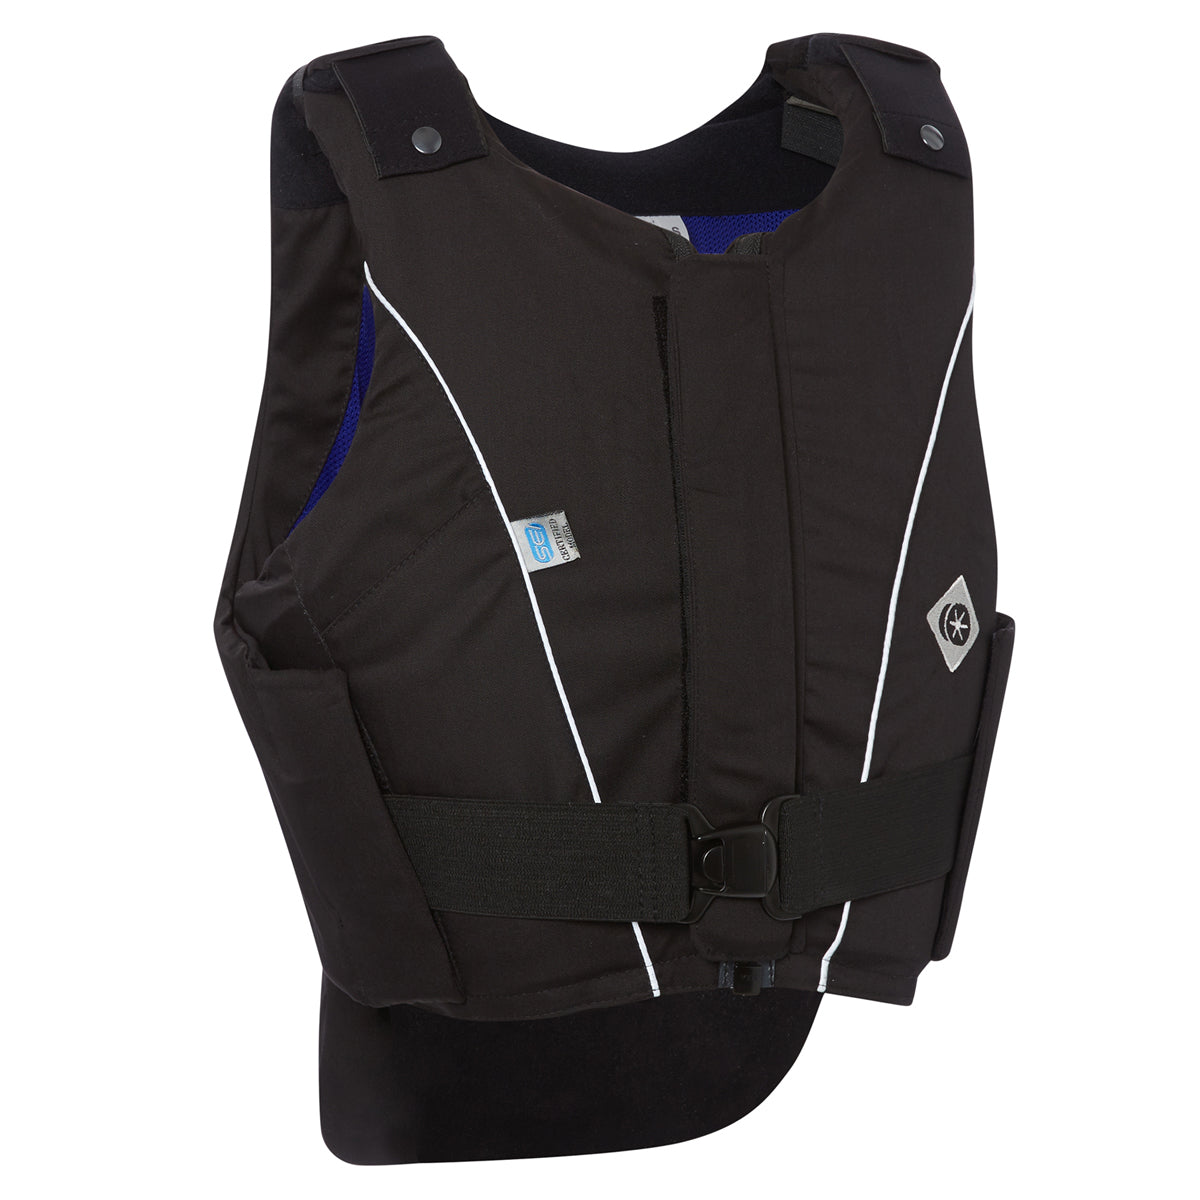 Charles Owen jL9 Body Protector